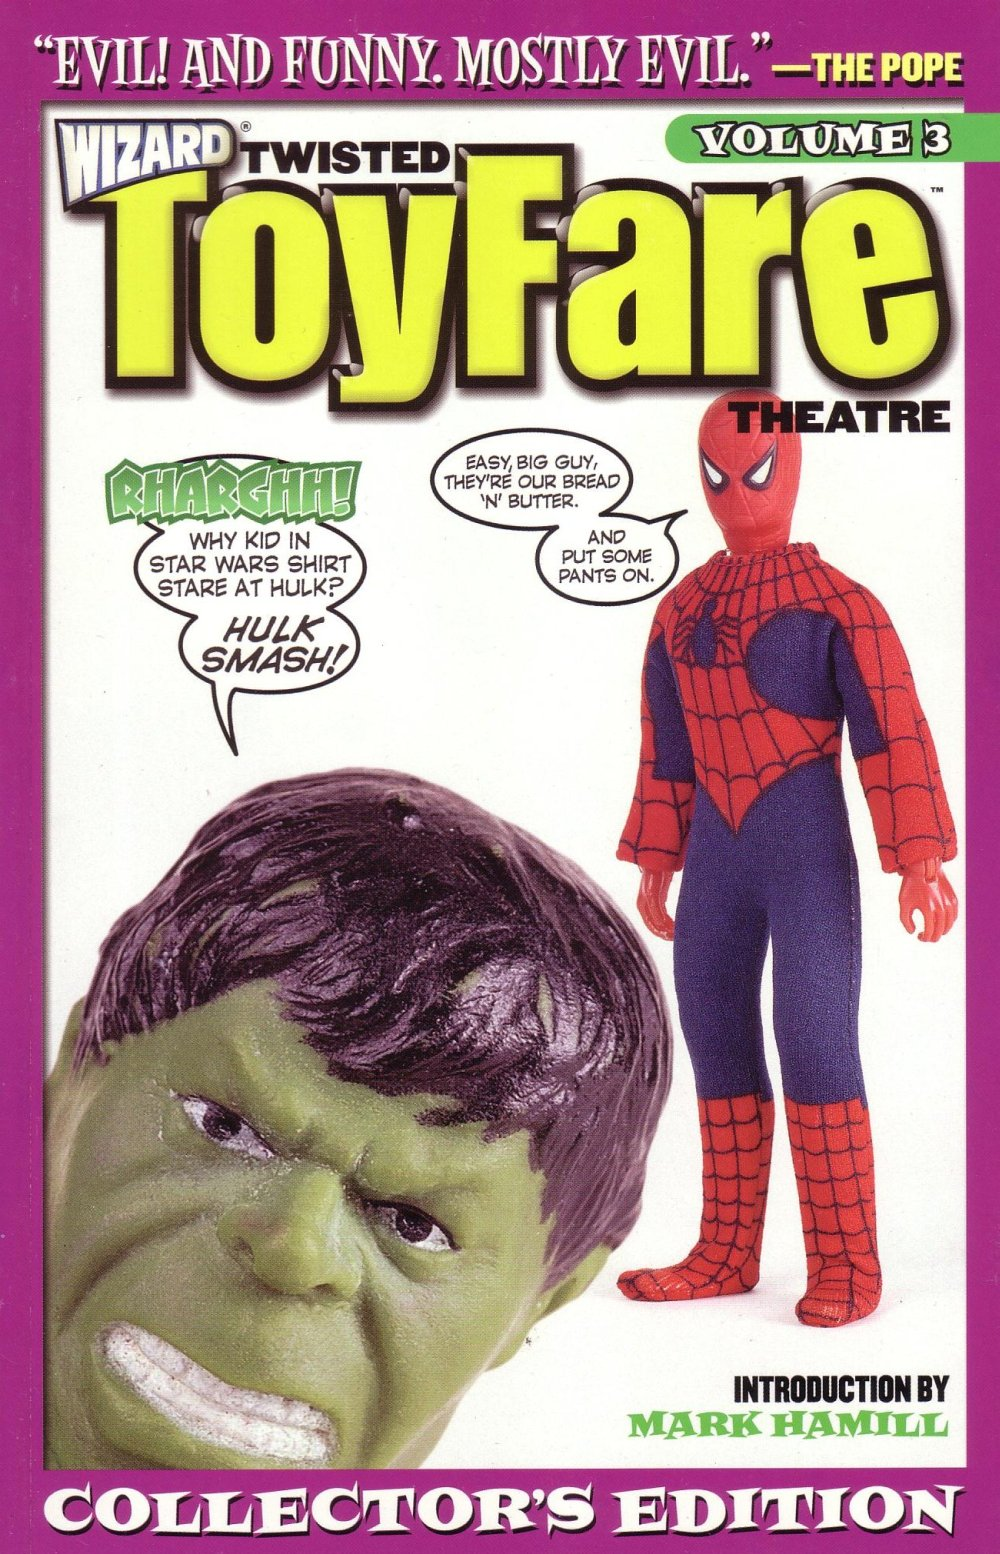 Wizard Twisted Toyfare Theatre [Wizard] V1 0003.jpg